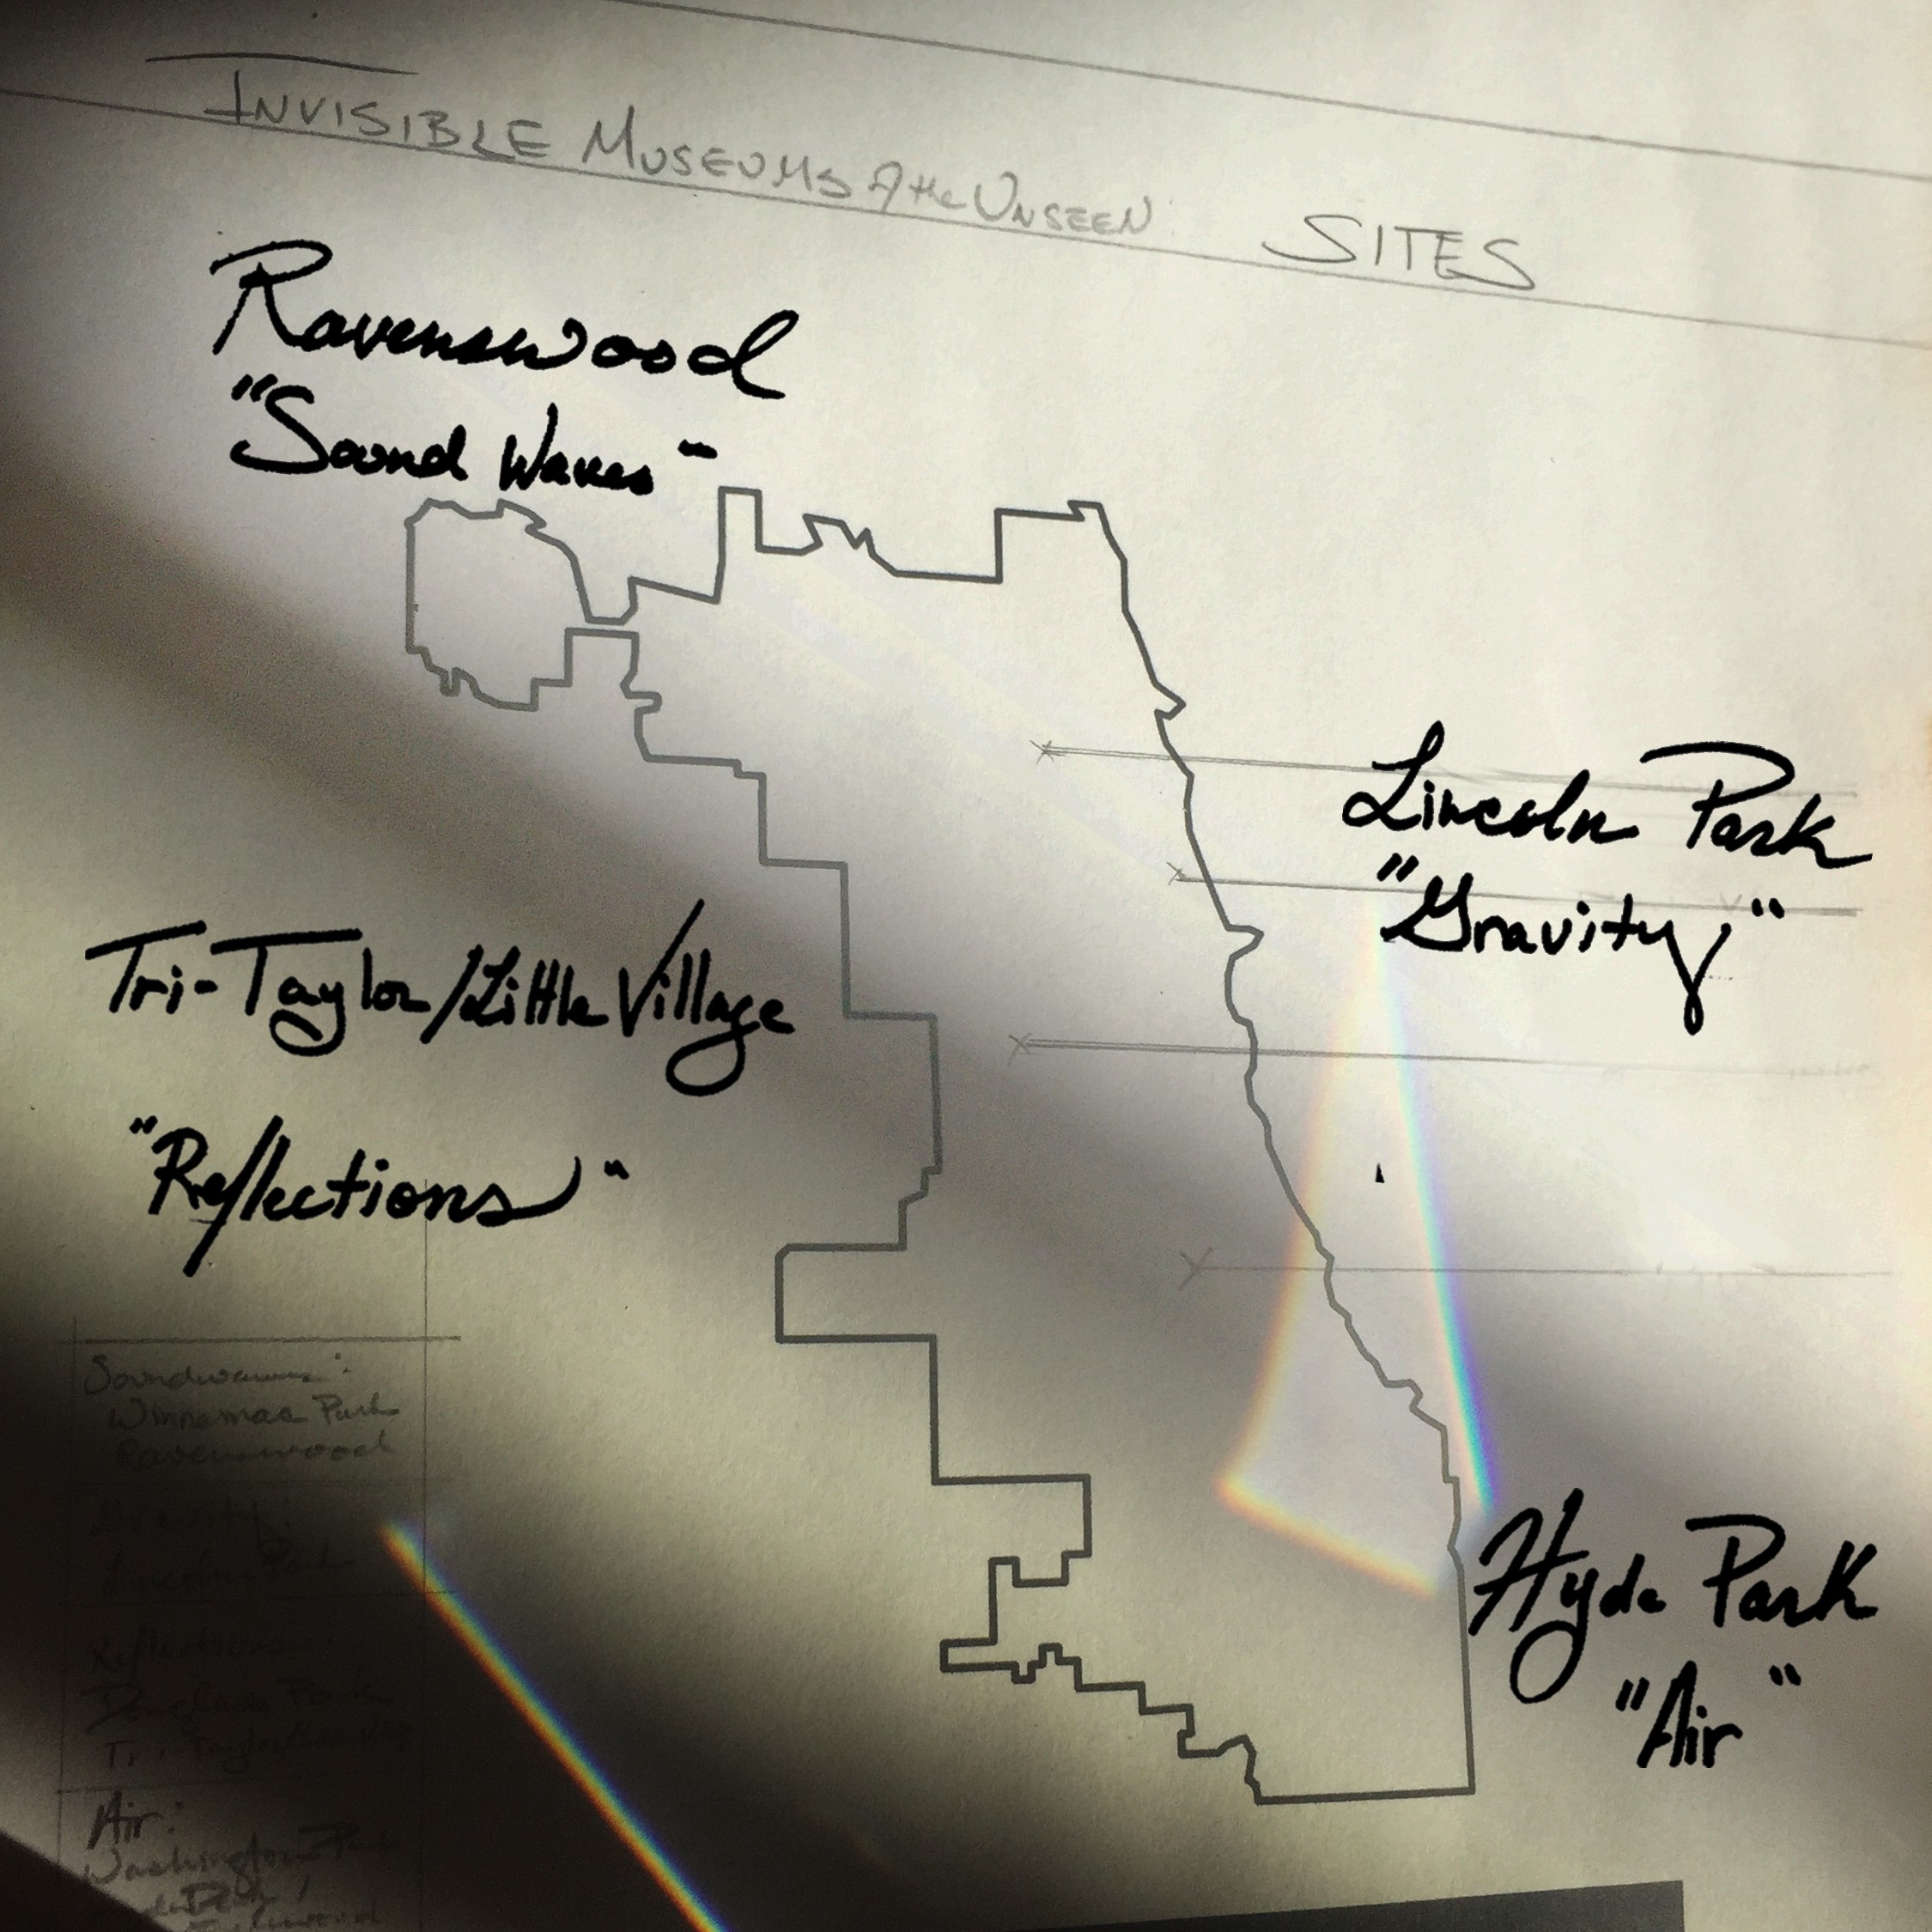 Sketches and notes from the research and design phase of producing this audio experience. Includes park titles on a map.